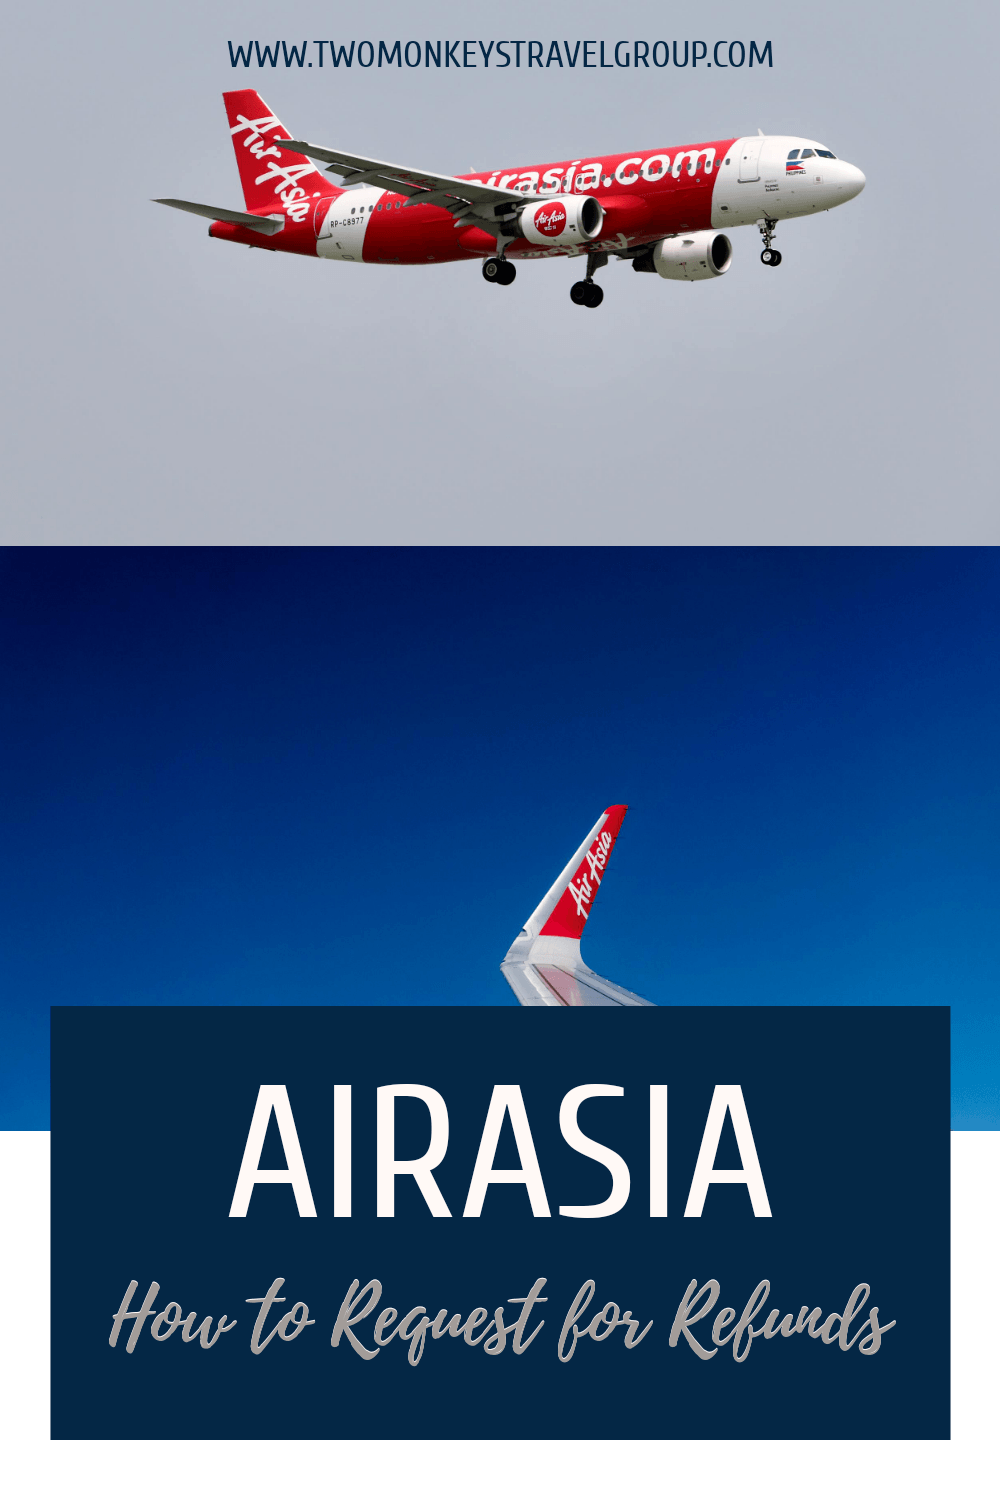 How to Request for Refunds on AirAsia (Including Different Types of Refund)